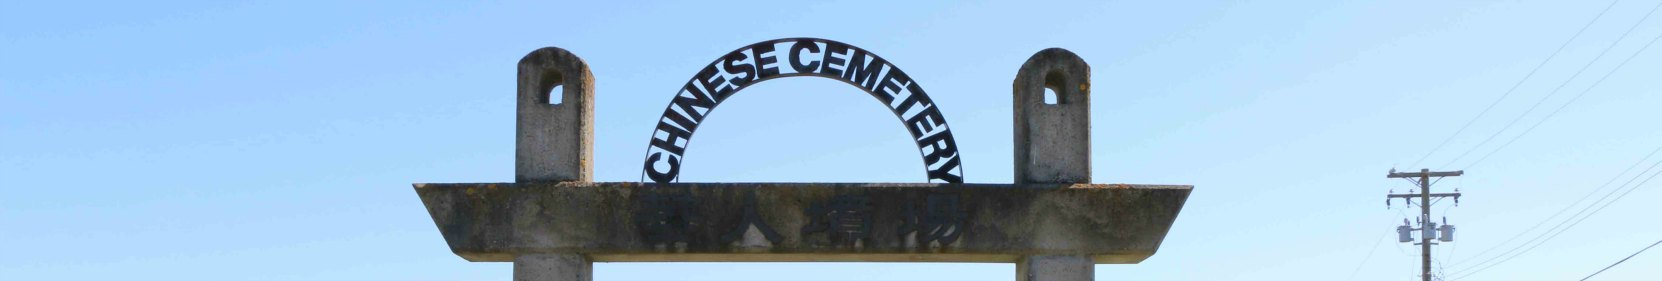 our web header image for the Chinese Cemetery at Harling Point. It shows the entrance gate to the cemetery